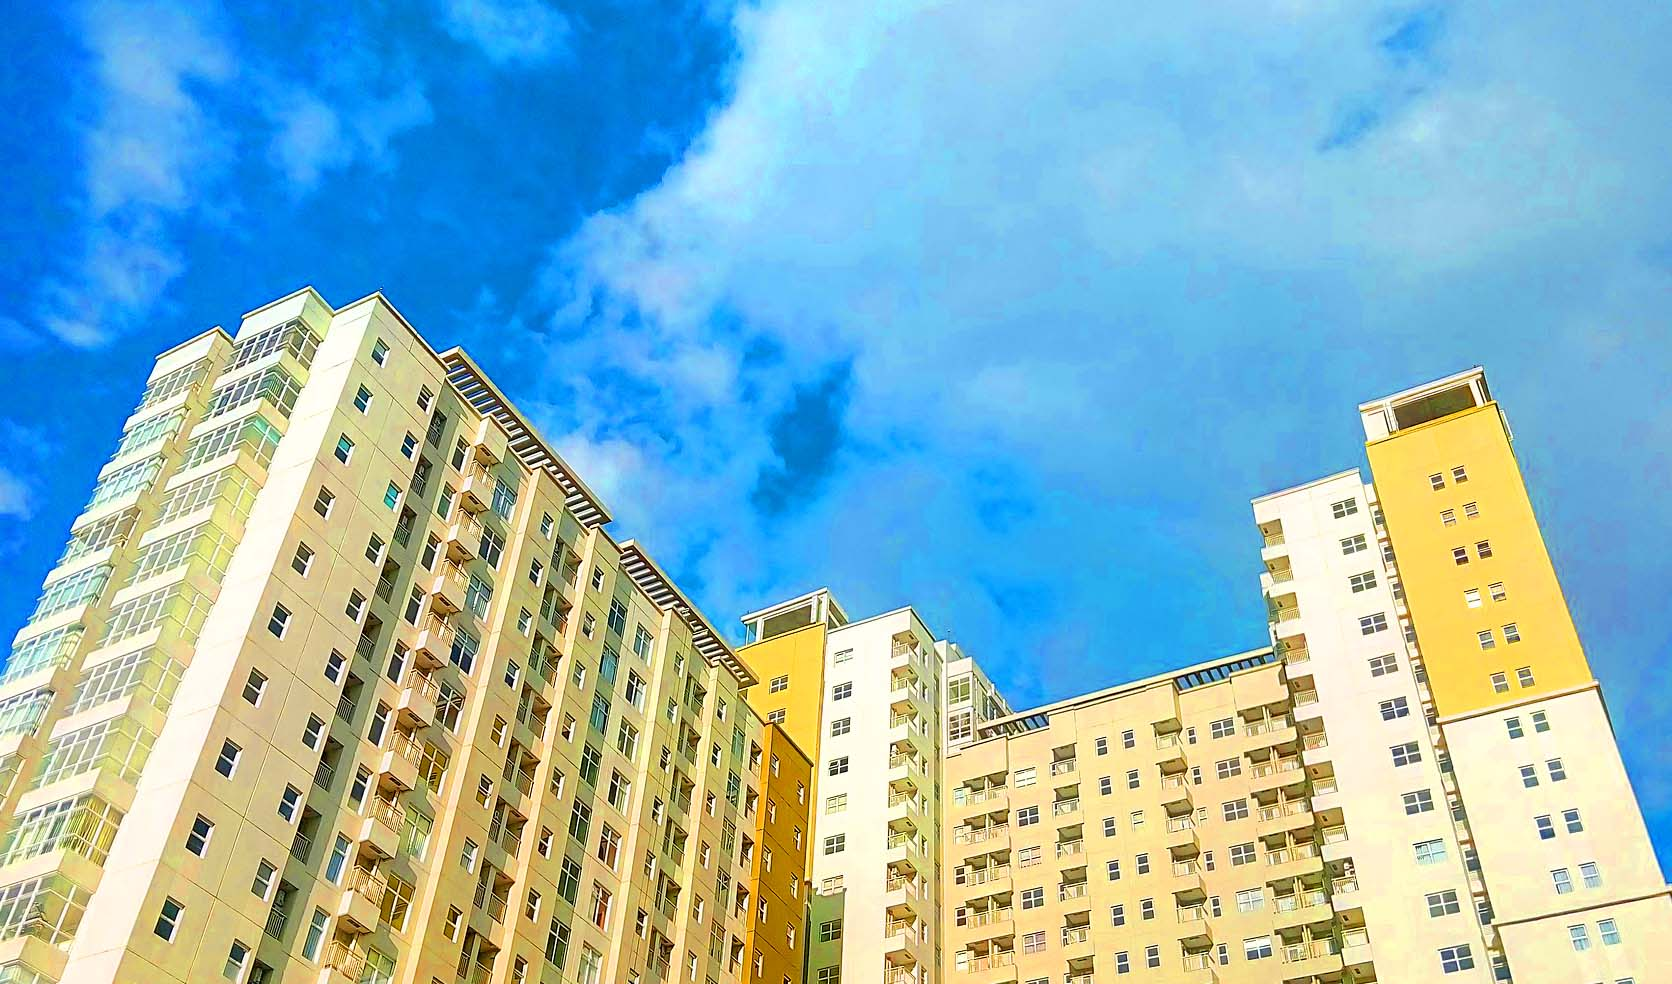 How much is the rent for different apartments in Kathmandu valley?